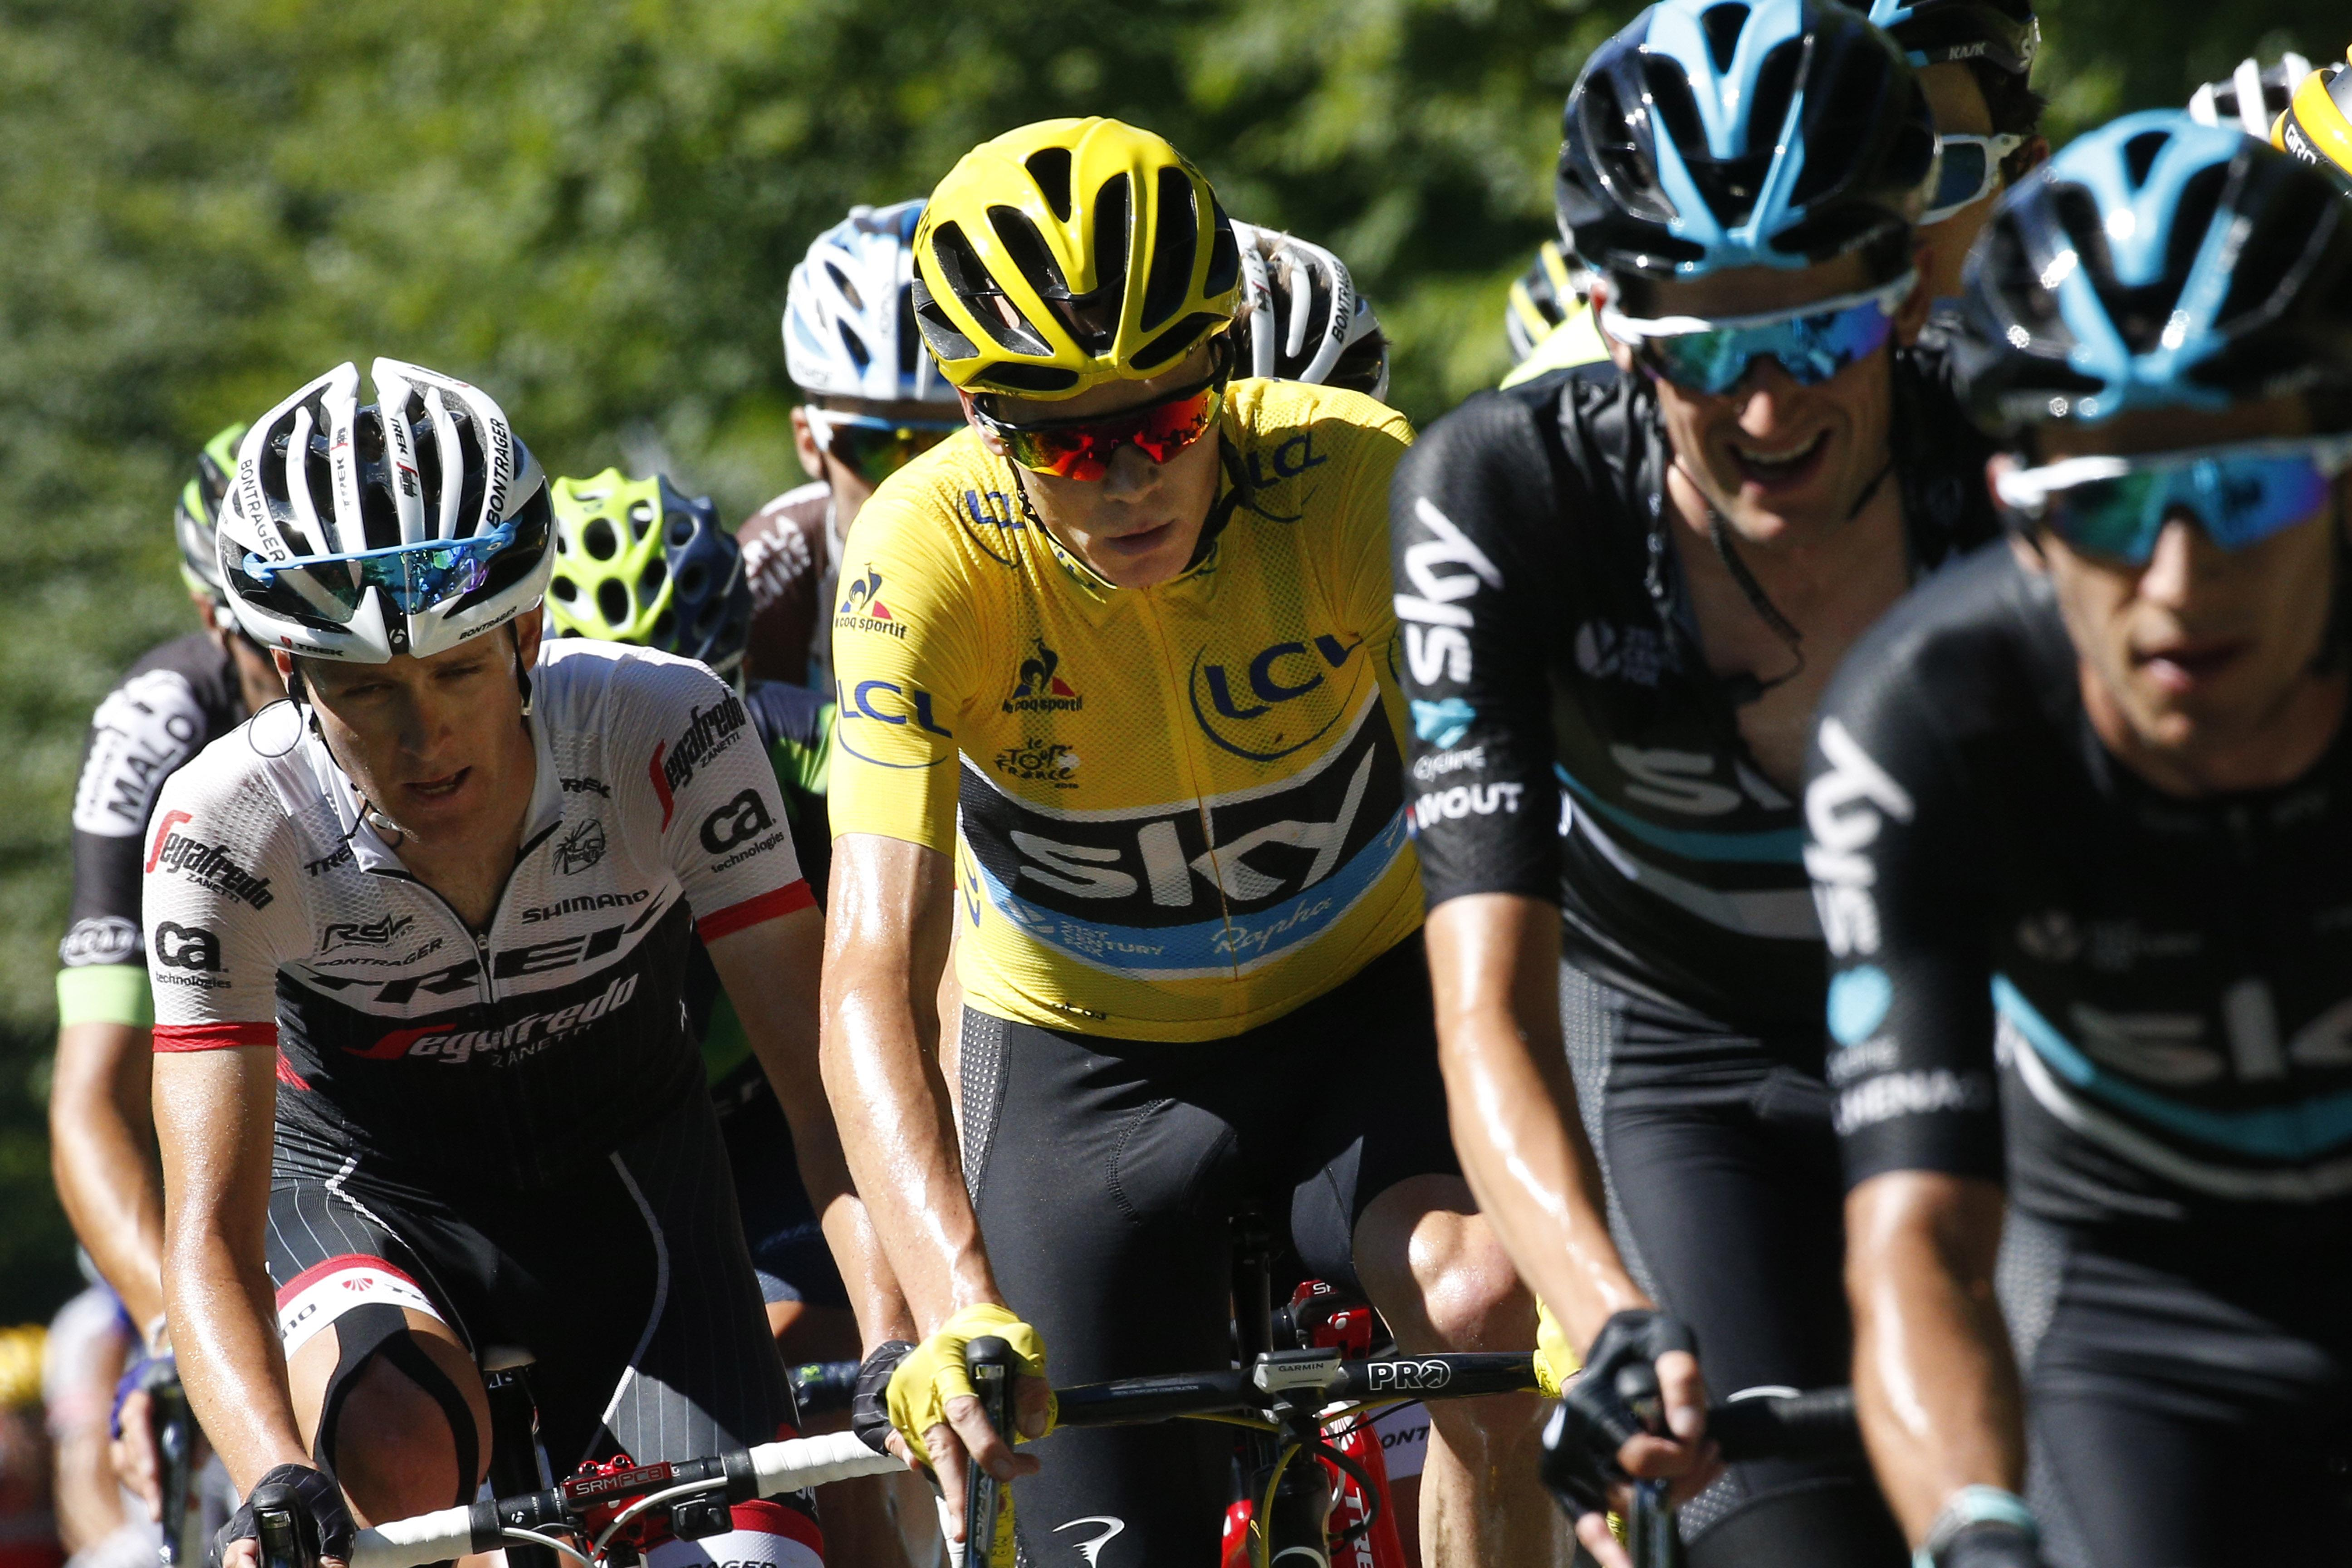 4b51041bf Froome tames his rivals in mountain stage at Tour de France